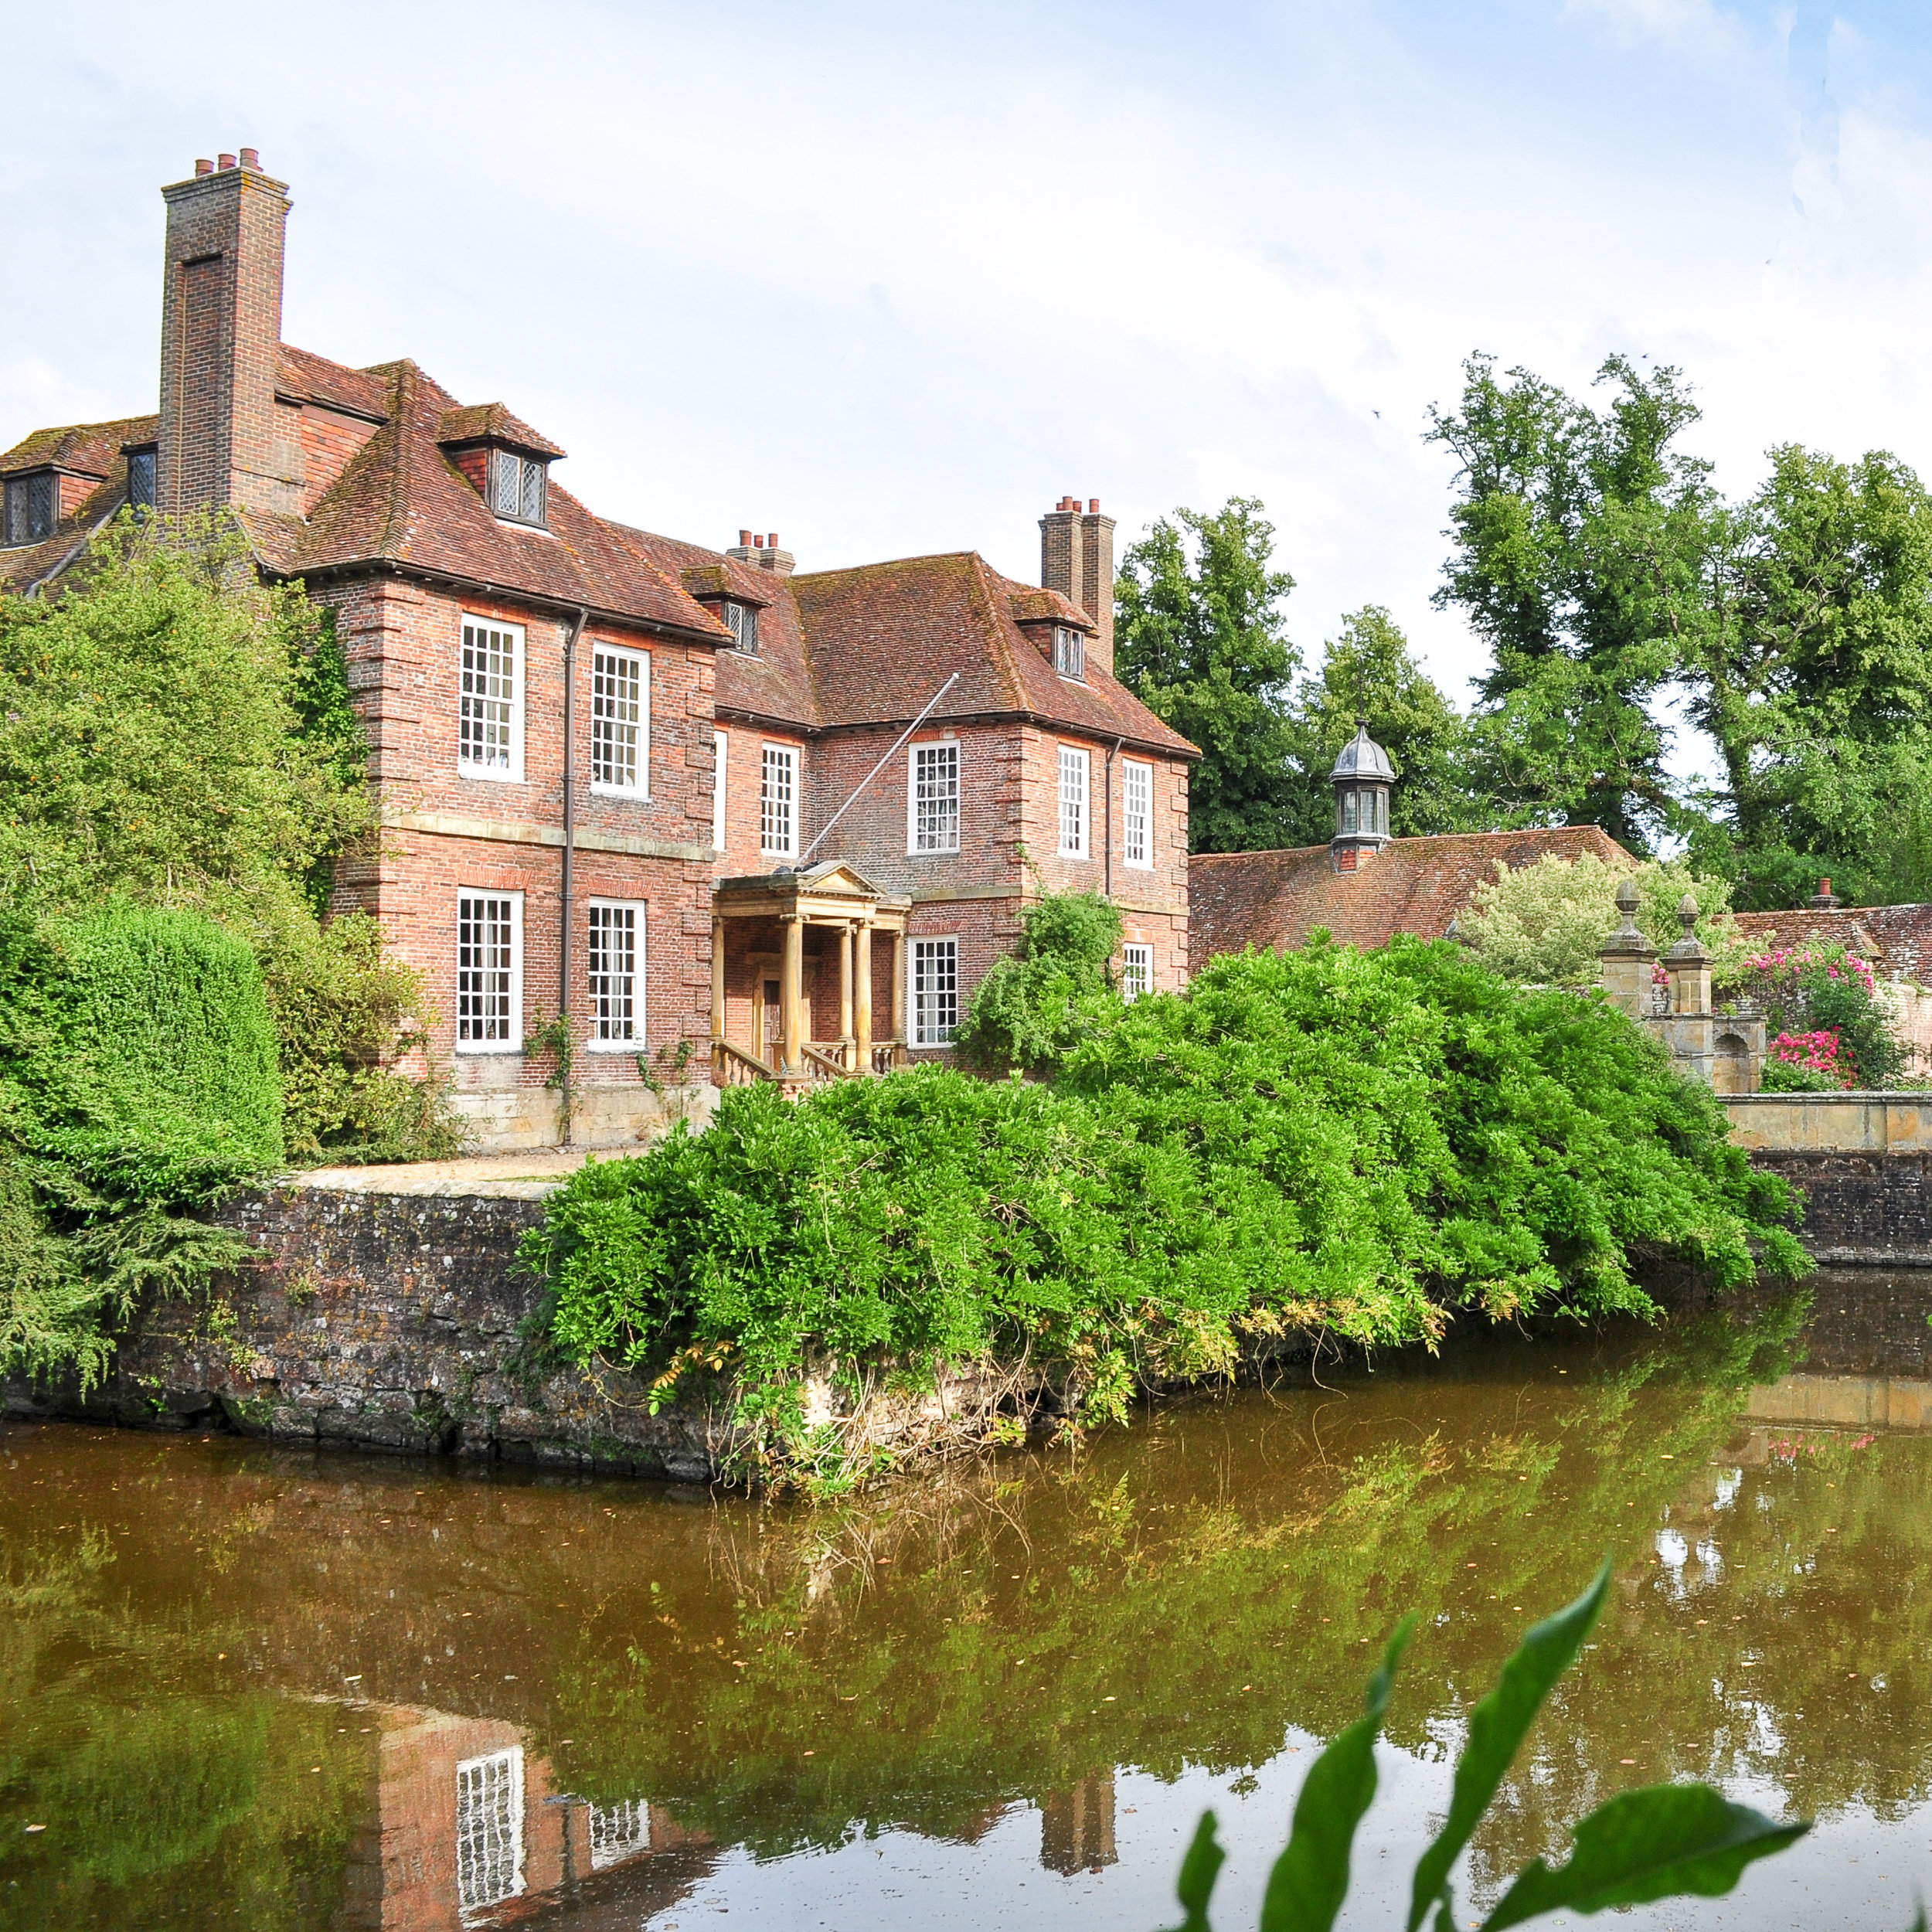 Groombridge Place Gardens – Manor House. (Grade 1 Listed Building)  - A complete internal refurbishment project was undertaken which included new Mechanical, Heating & Plumbing systems and services, including design.